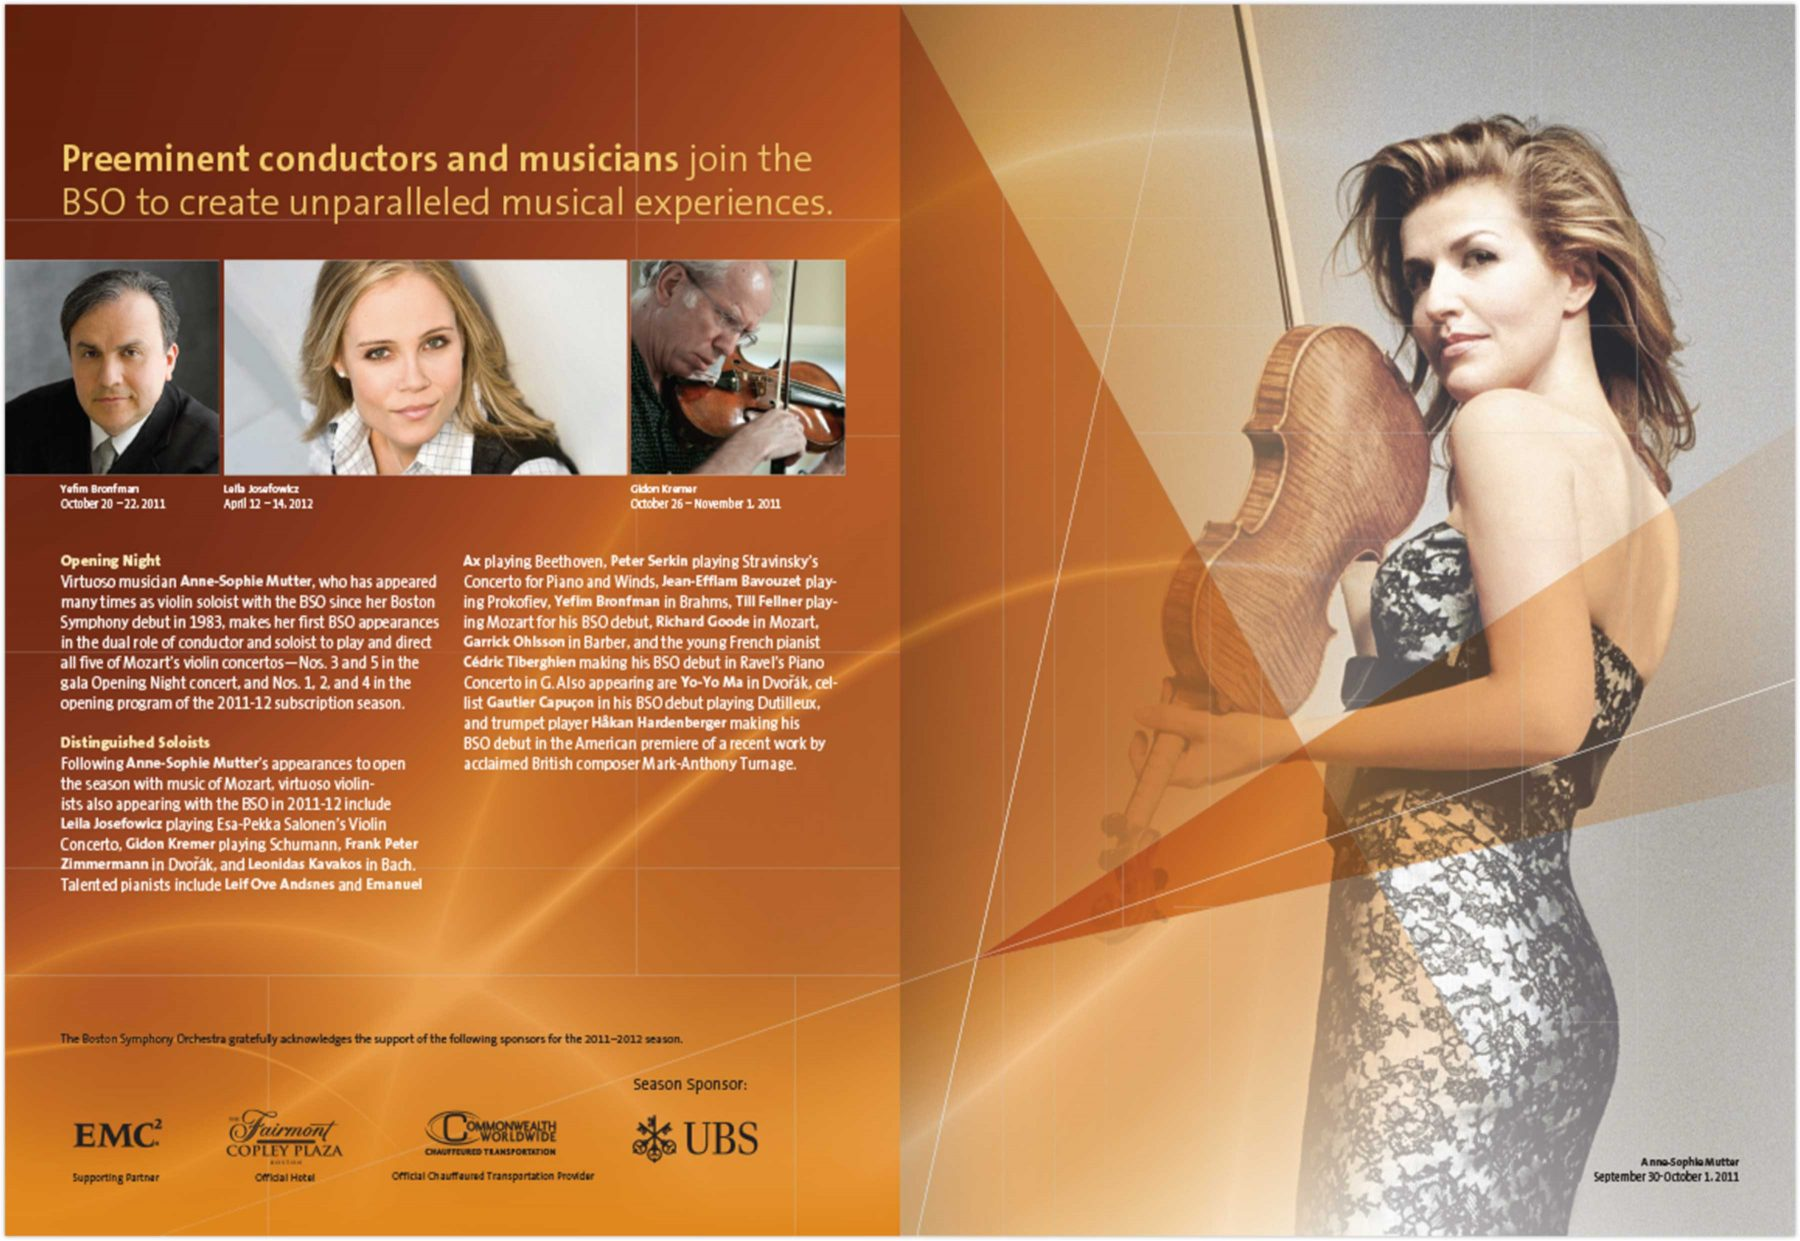 Brochure page: Preeminent conductors and musicians join the BSO to create unparalleled musical experiences